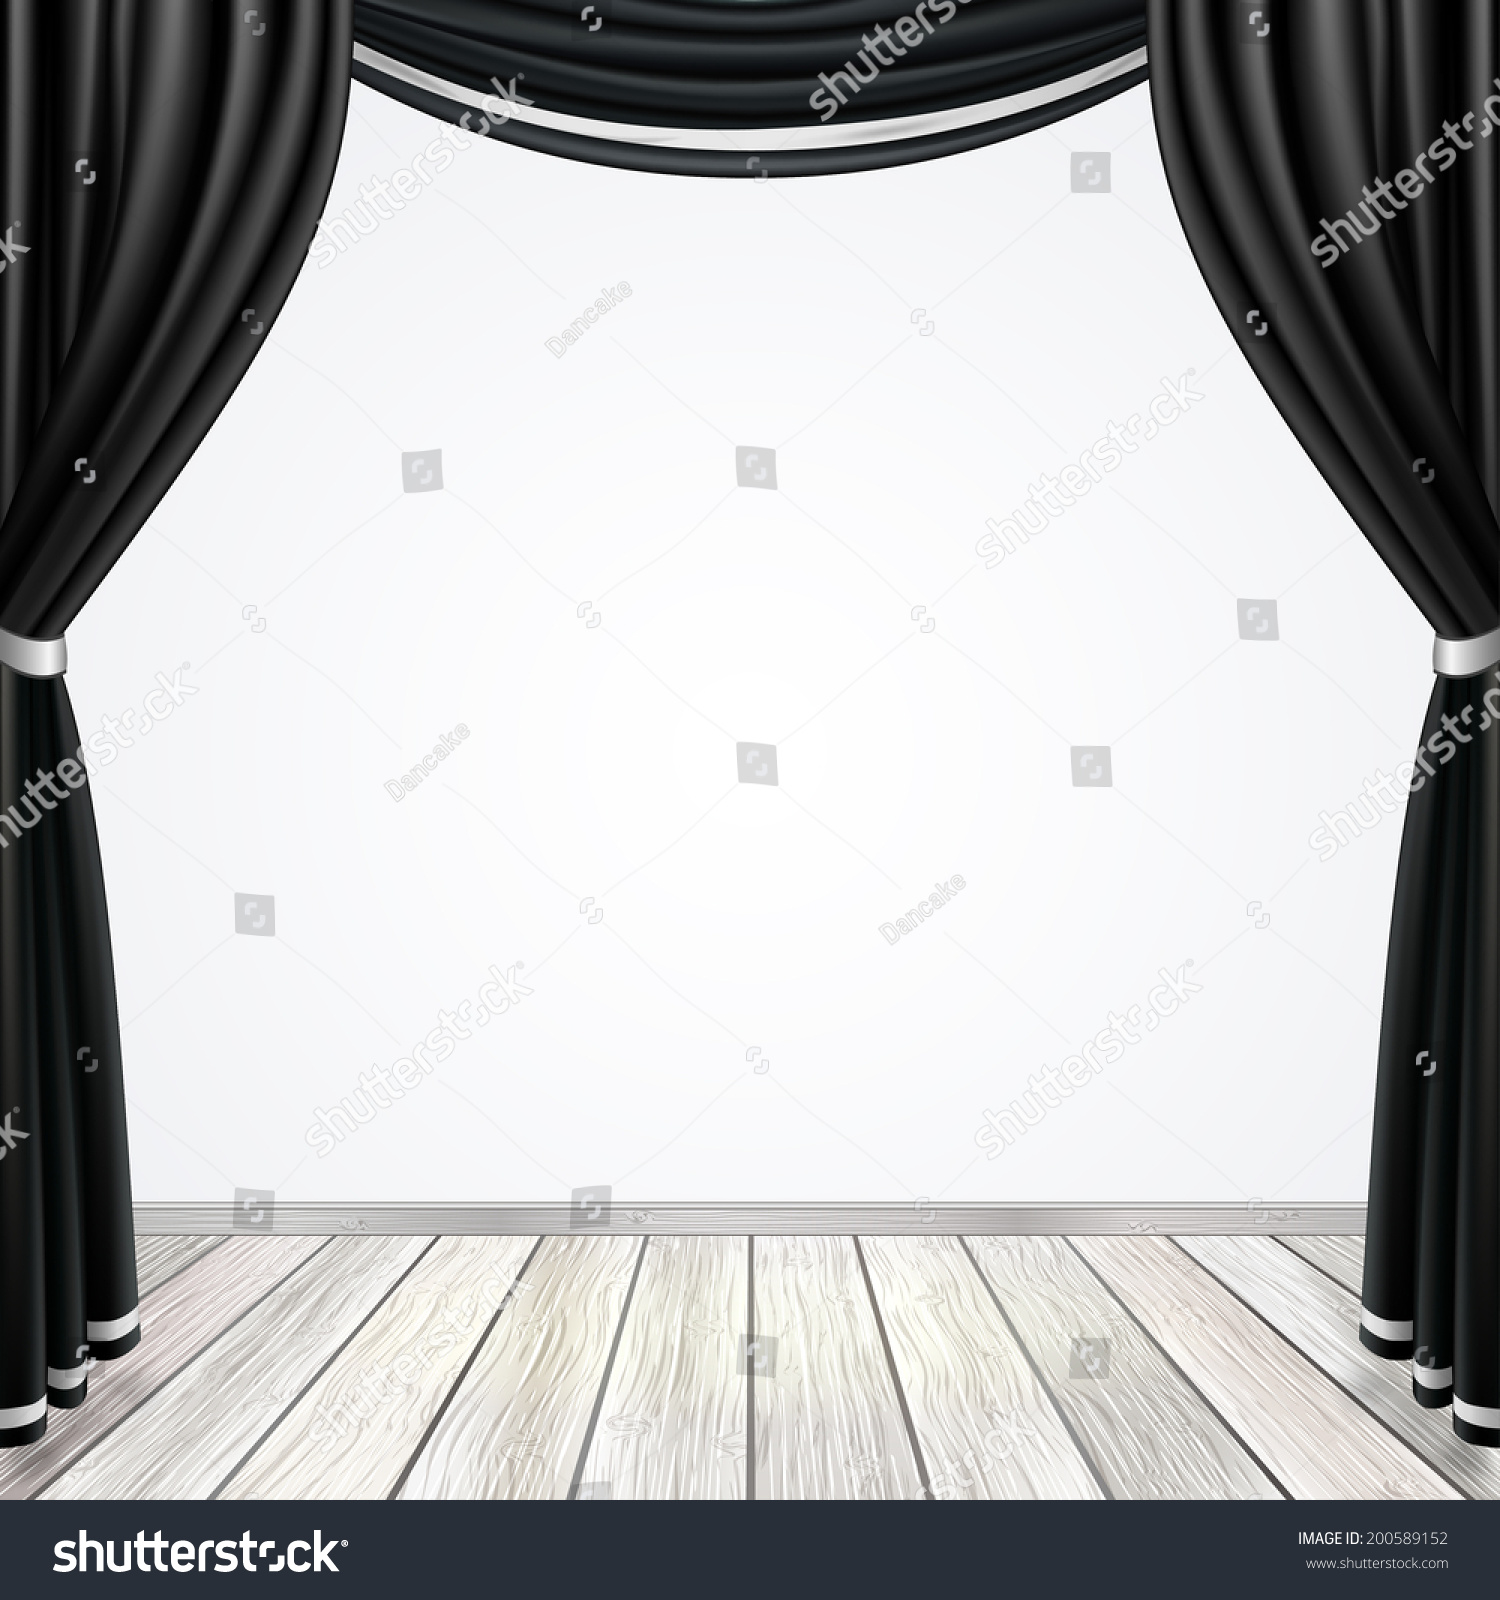 Empty Stage Black Curtains Drapes Light Stock Vector ...